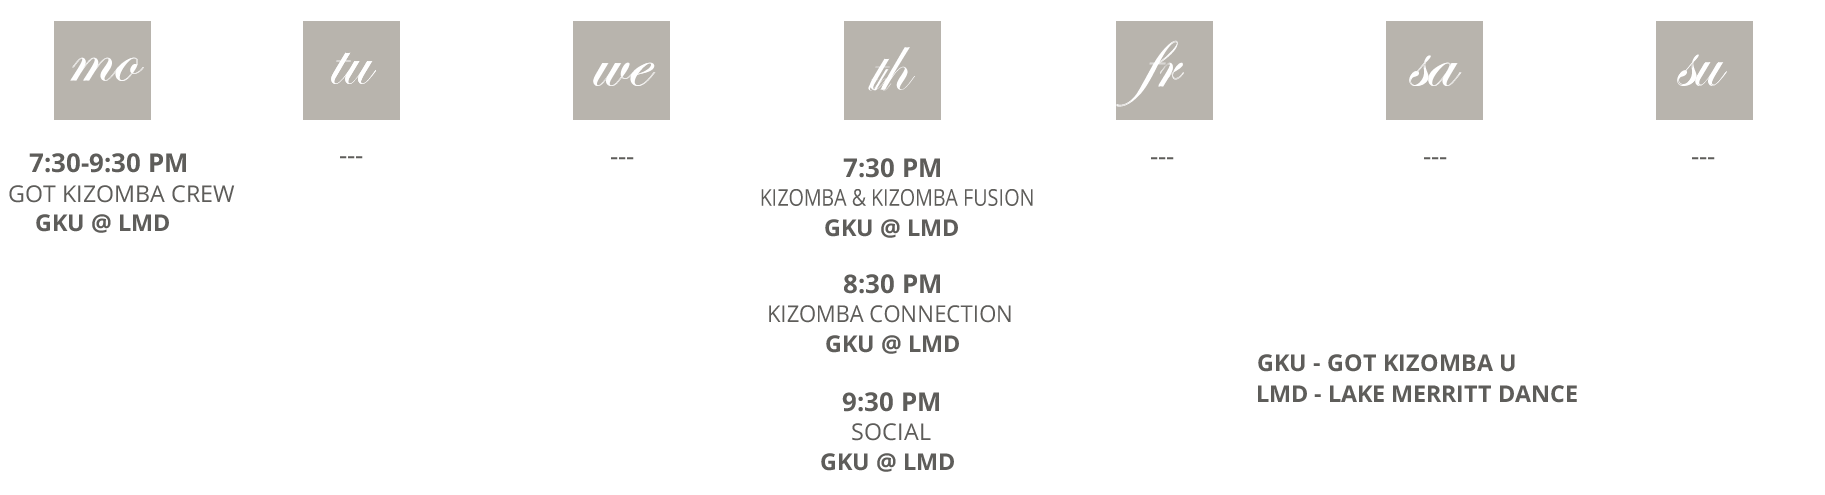 Got Kizomba U schedule at a glance